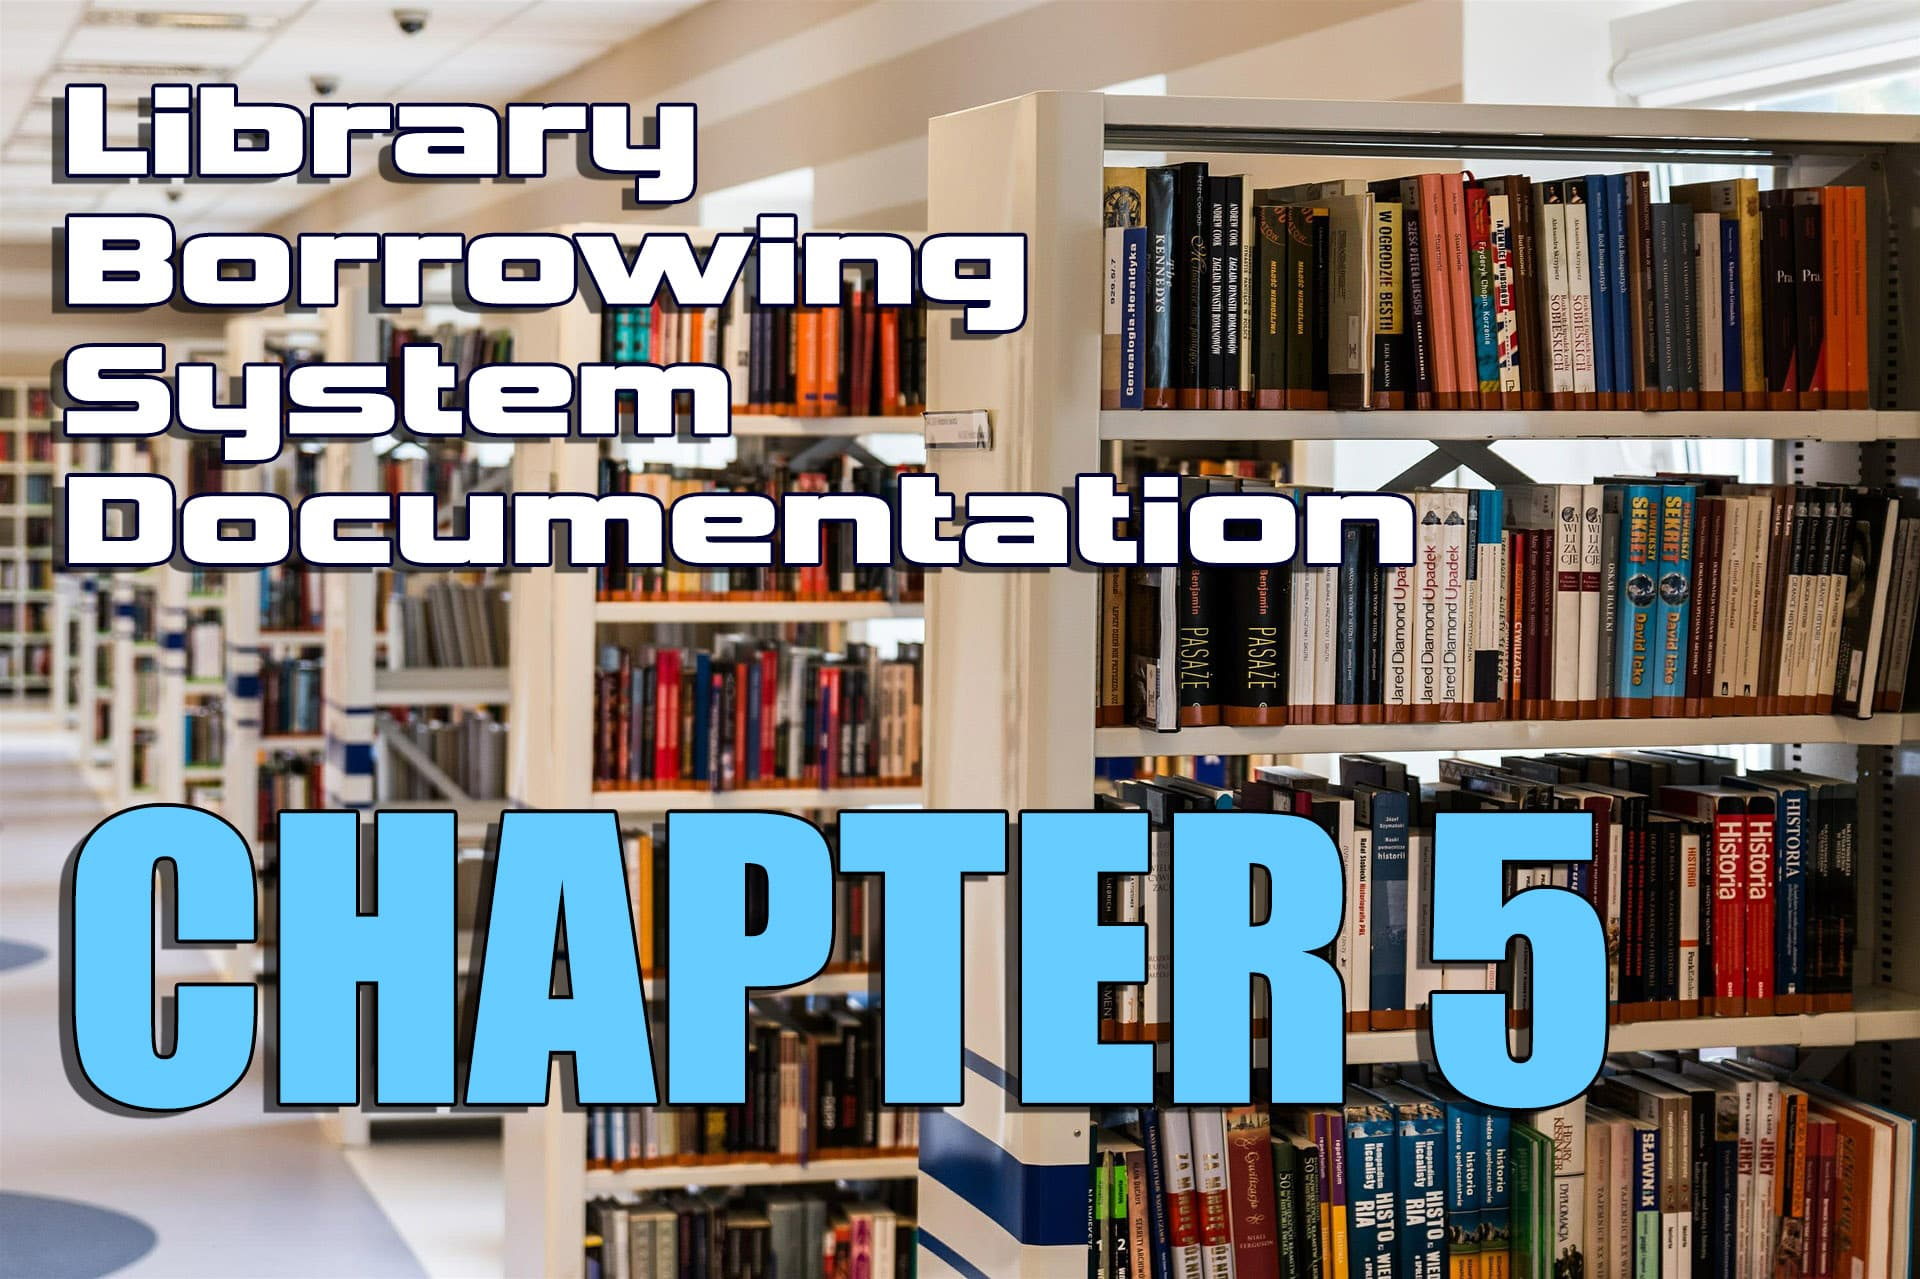 Library Borrowing System Chapter 5 - Proposed System